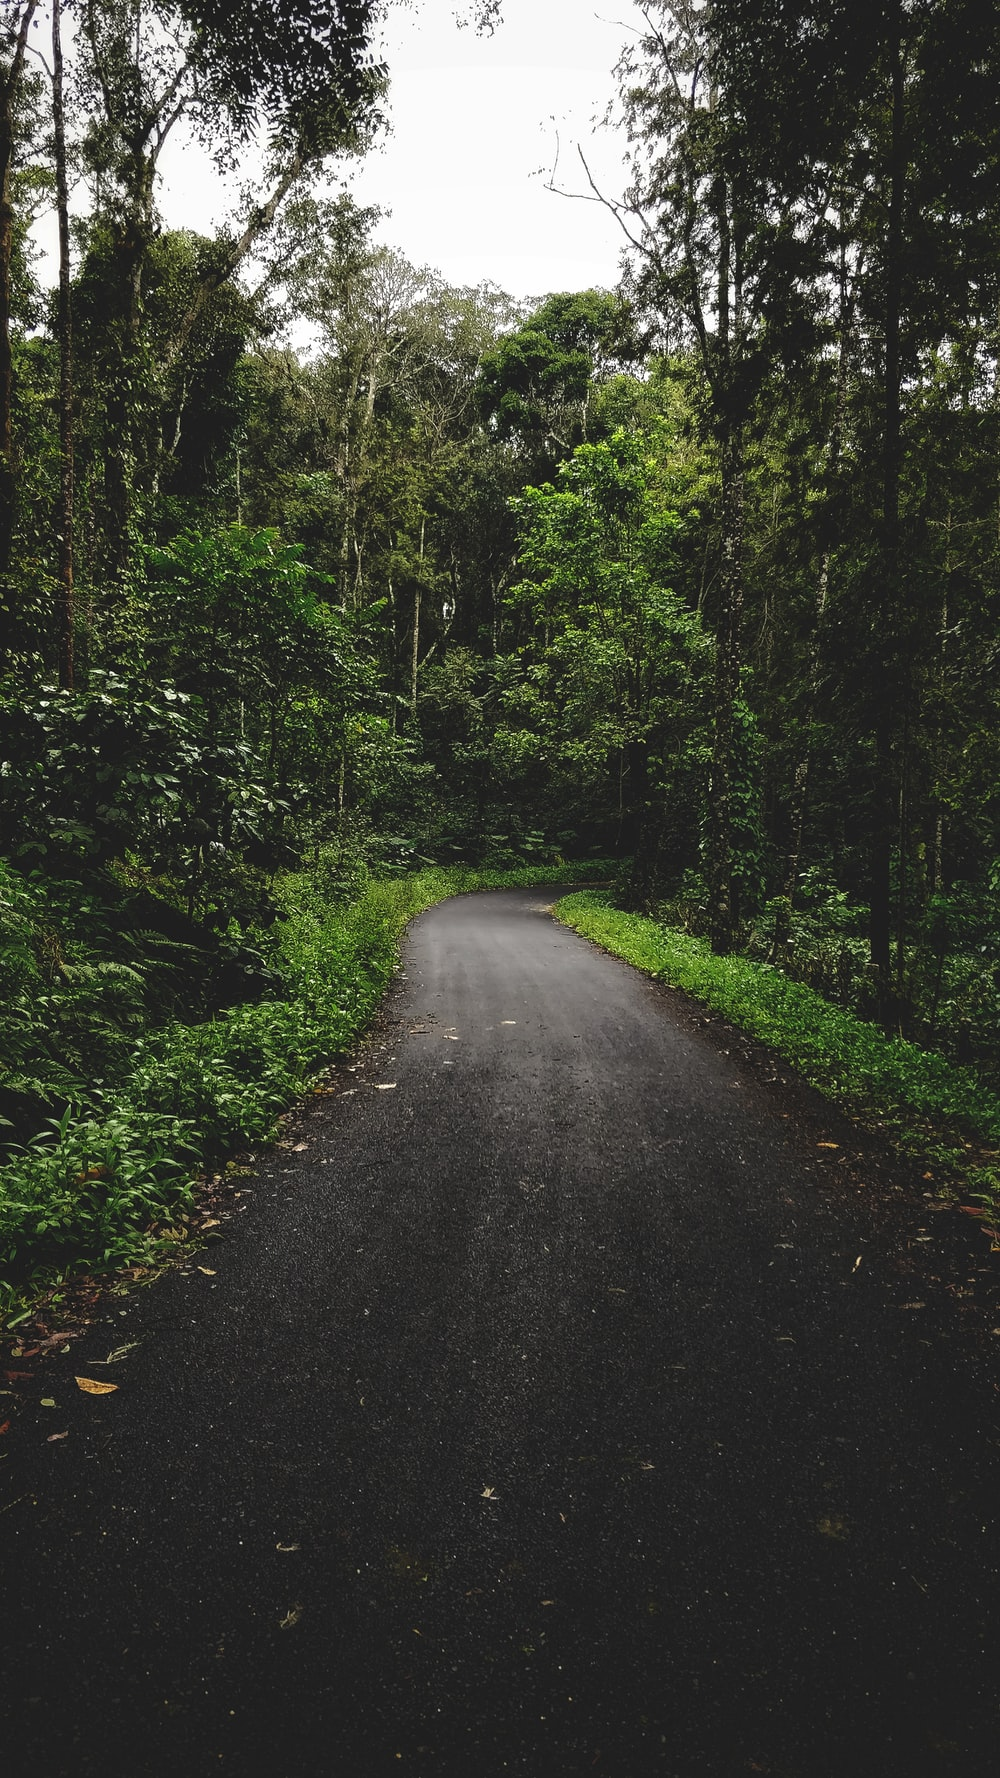 gray road surrounded by green trees